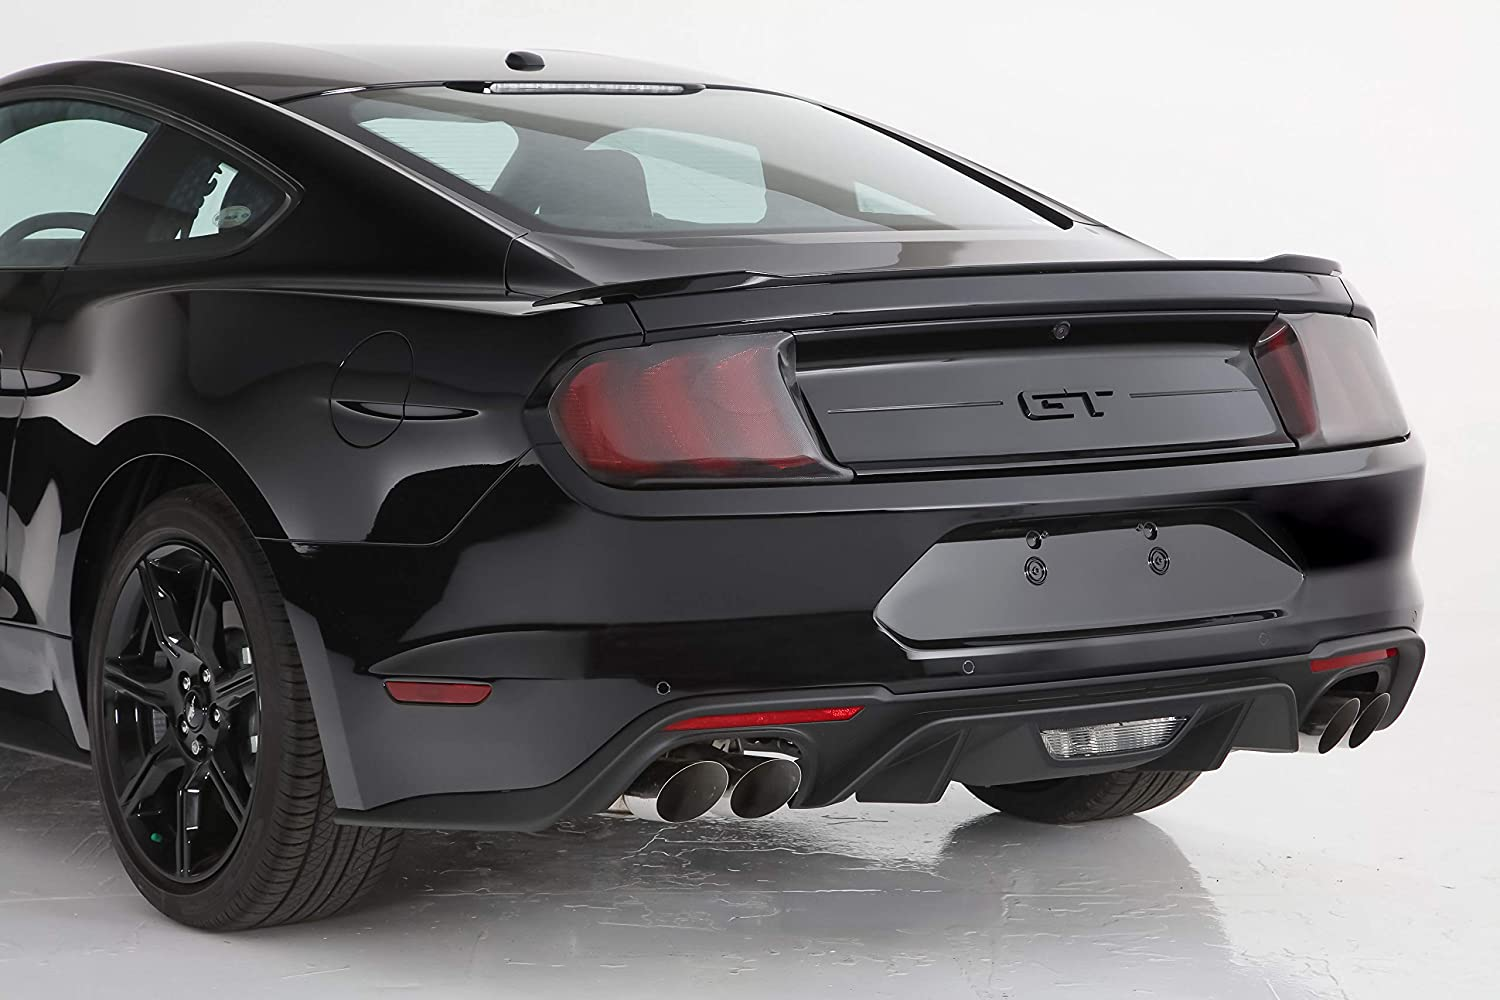 Blackout Taillight Covers GT Styling GT4698X Blackout Taillight Covers Carbon Fiber 2 pc